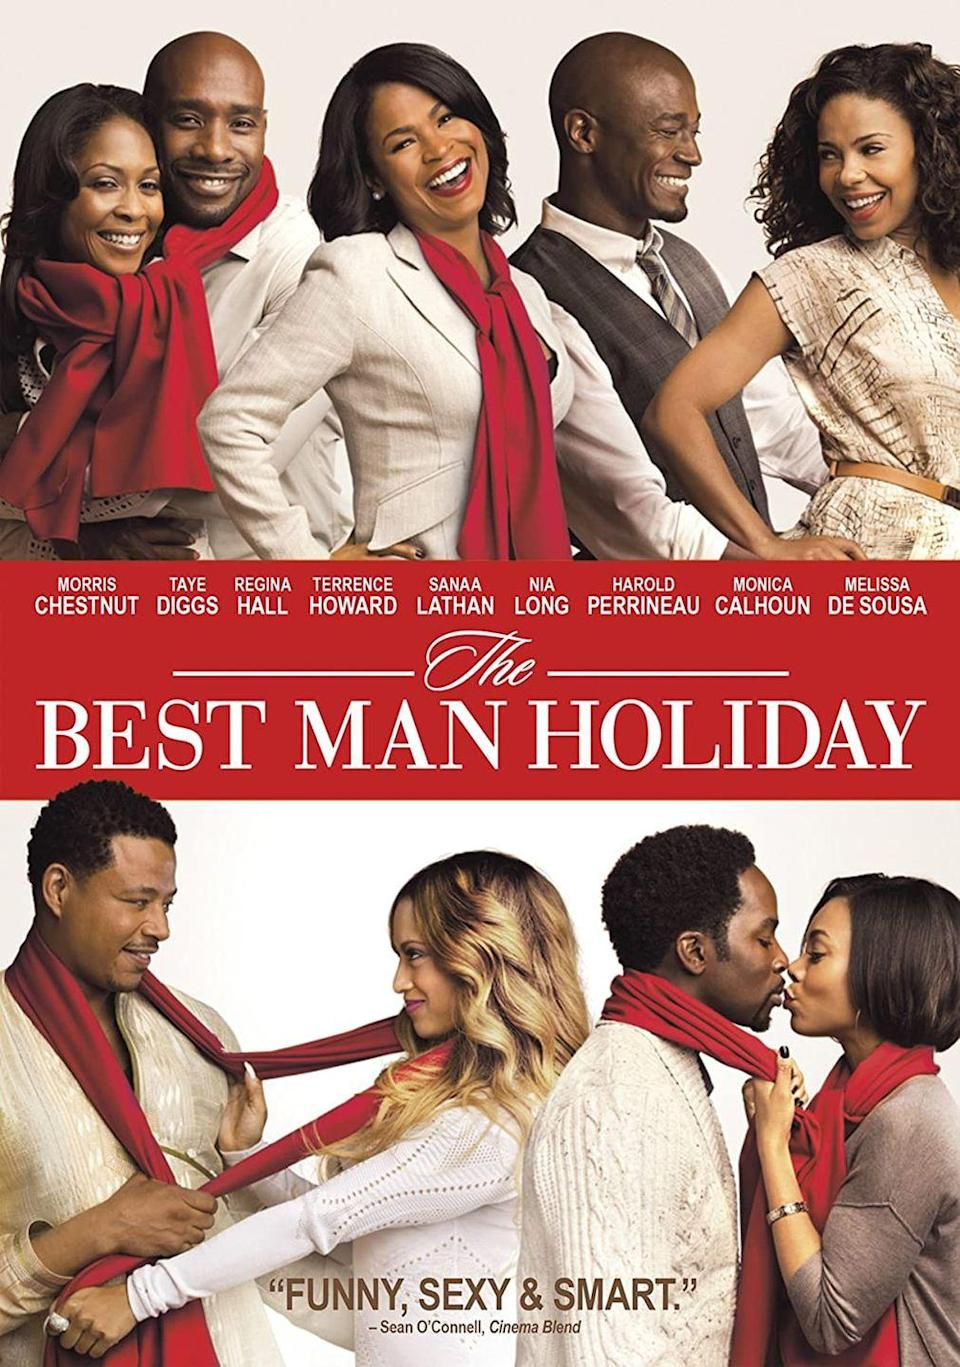 """<p>A sequel to 1999's <em><a href=""""https://www.amazon.com/Best-Man-Taye-Diggs/dp/B001VM6Z1O?tag=syn-yahoo-20&ascsubtag=%5Bartid%7C10055.g.1315%5Bsrc%7Cyahoo-us"""" rel=""""nofollow noopener"""" target=""""_blank"""" data-ylk=""""slk:The Best Man"""" class=""""link rapid-noclick-resp"""">The Best Man</a></em>, director Malcom D. Lee reunites the original cast, including Taye Diggs, Terrence Howard and Nia Long for a holiday-themed comedy. Make sure to tell your loved ones how much you care for them throughout this season.</p><p><a class=""""link rapid-noclick-resp"""" href=""""https://www.amazon.com/Best-Man-Holiday-Monica-Calhoun/dp/B00HYI8DWS?tag=syn-yahoo-20&ascsubtag=%5Bartid%7C10055.g.1315%5Bsrc%7Cyahoo-us"""" rel=""""nofollow noopener"""" target=""""_blank"""" data-ylk=""""slk:WATCH NOW"""">WATCH NOW</a></p>"""